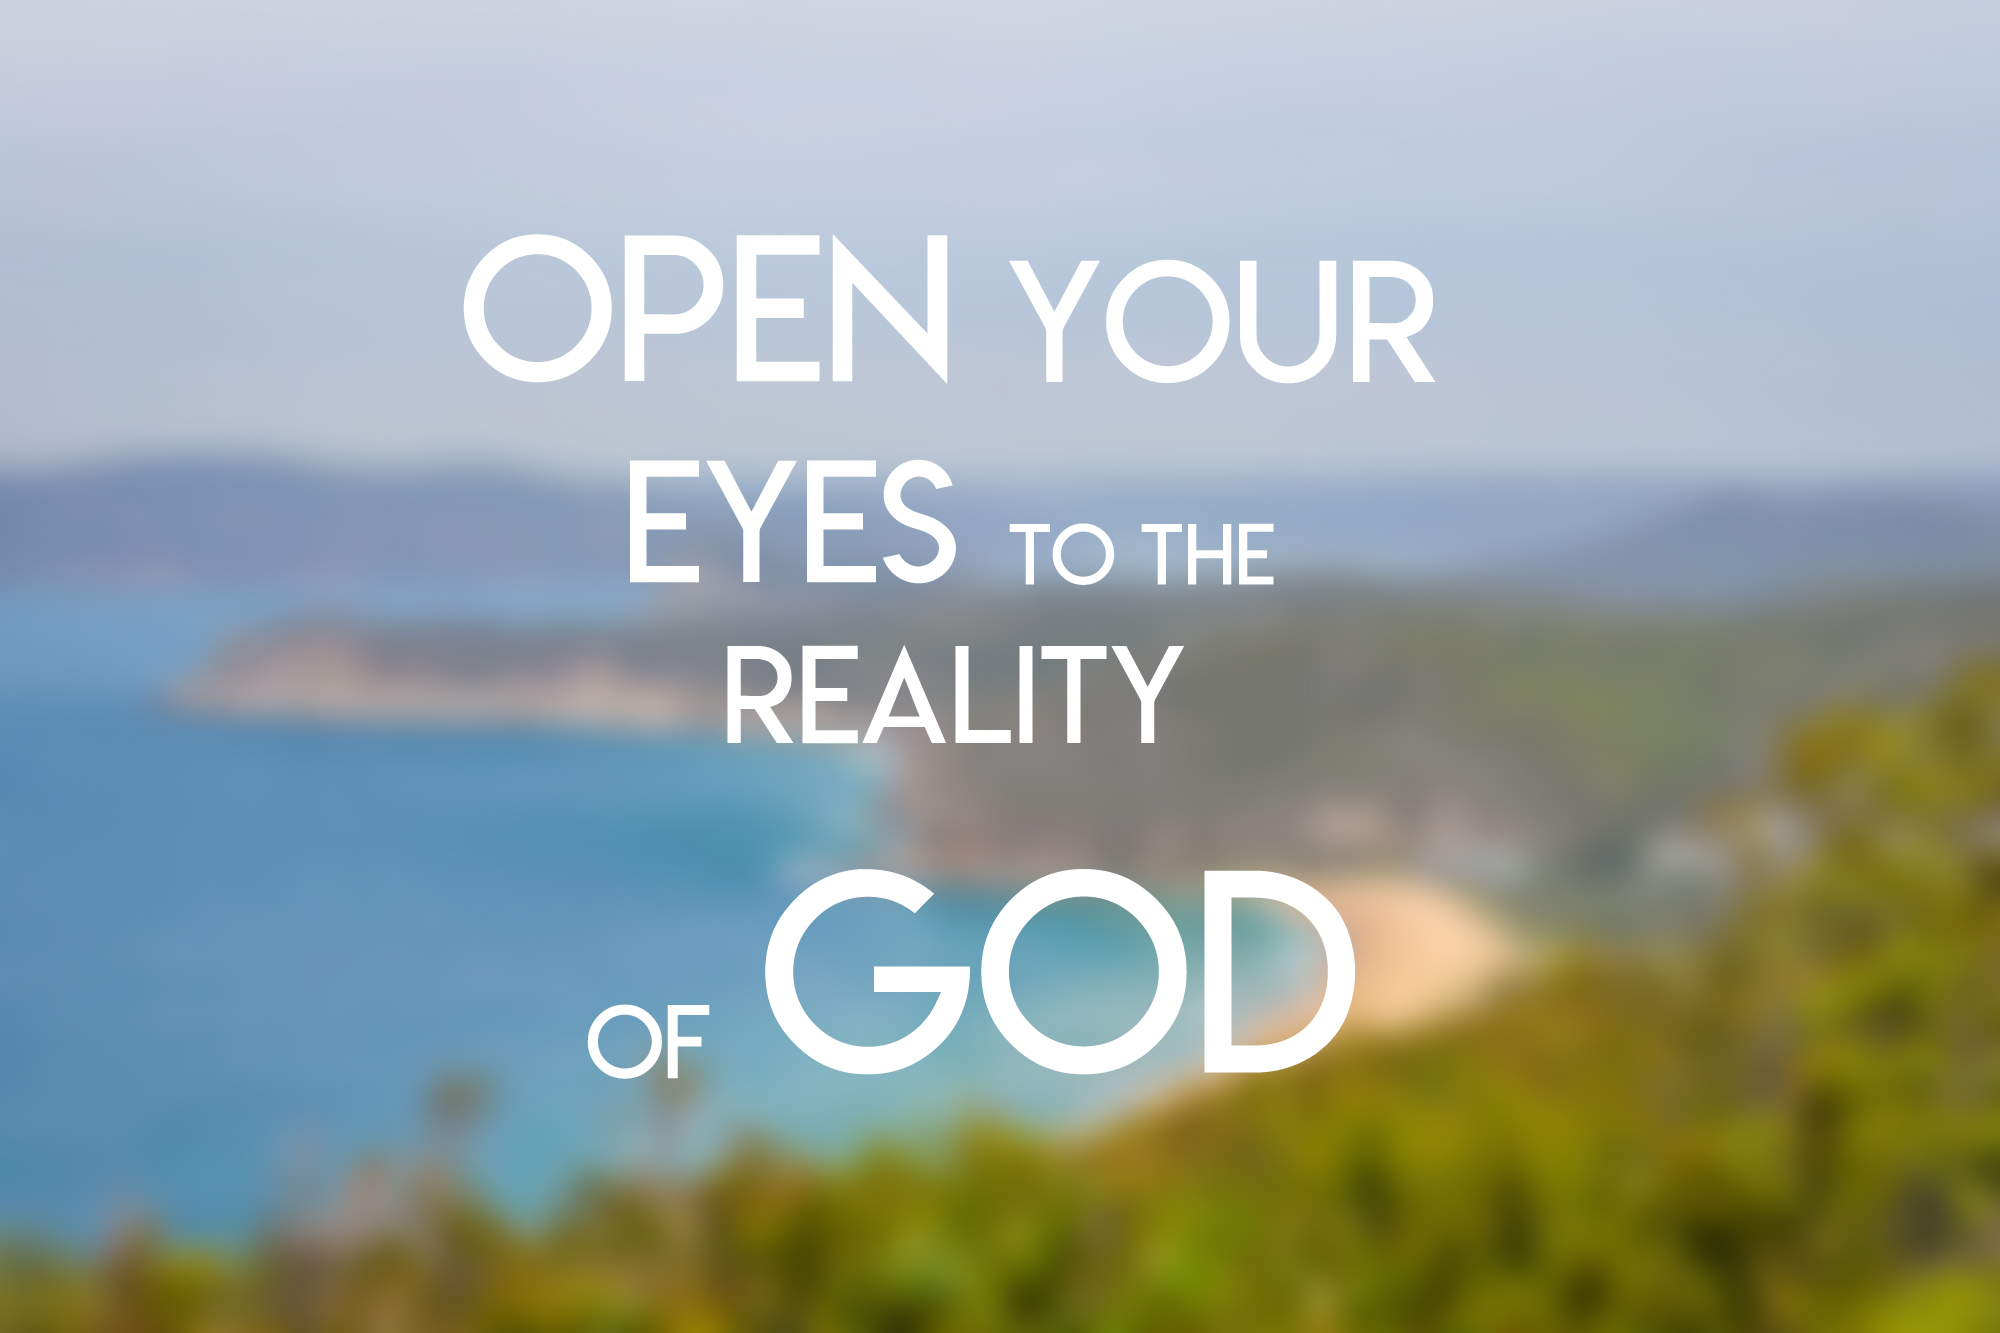 Open Your Eyes To The Reality of God